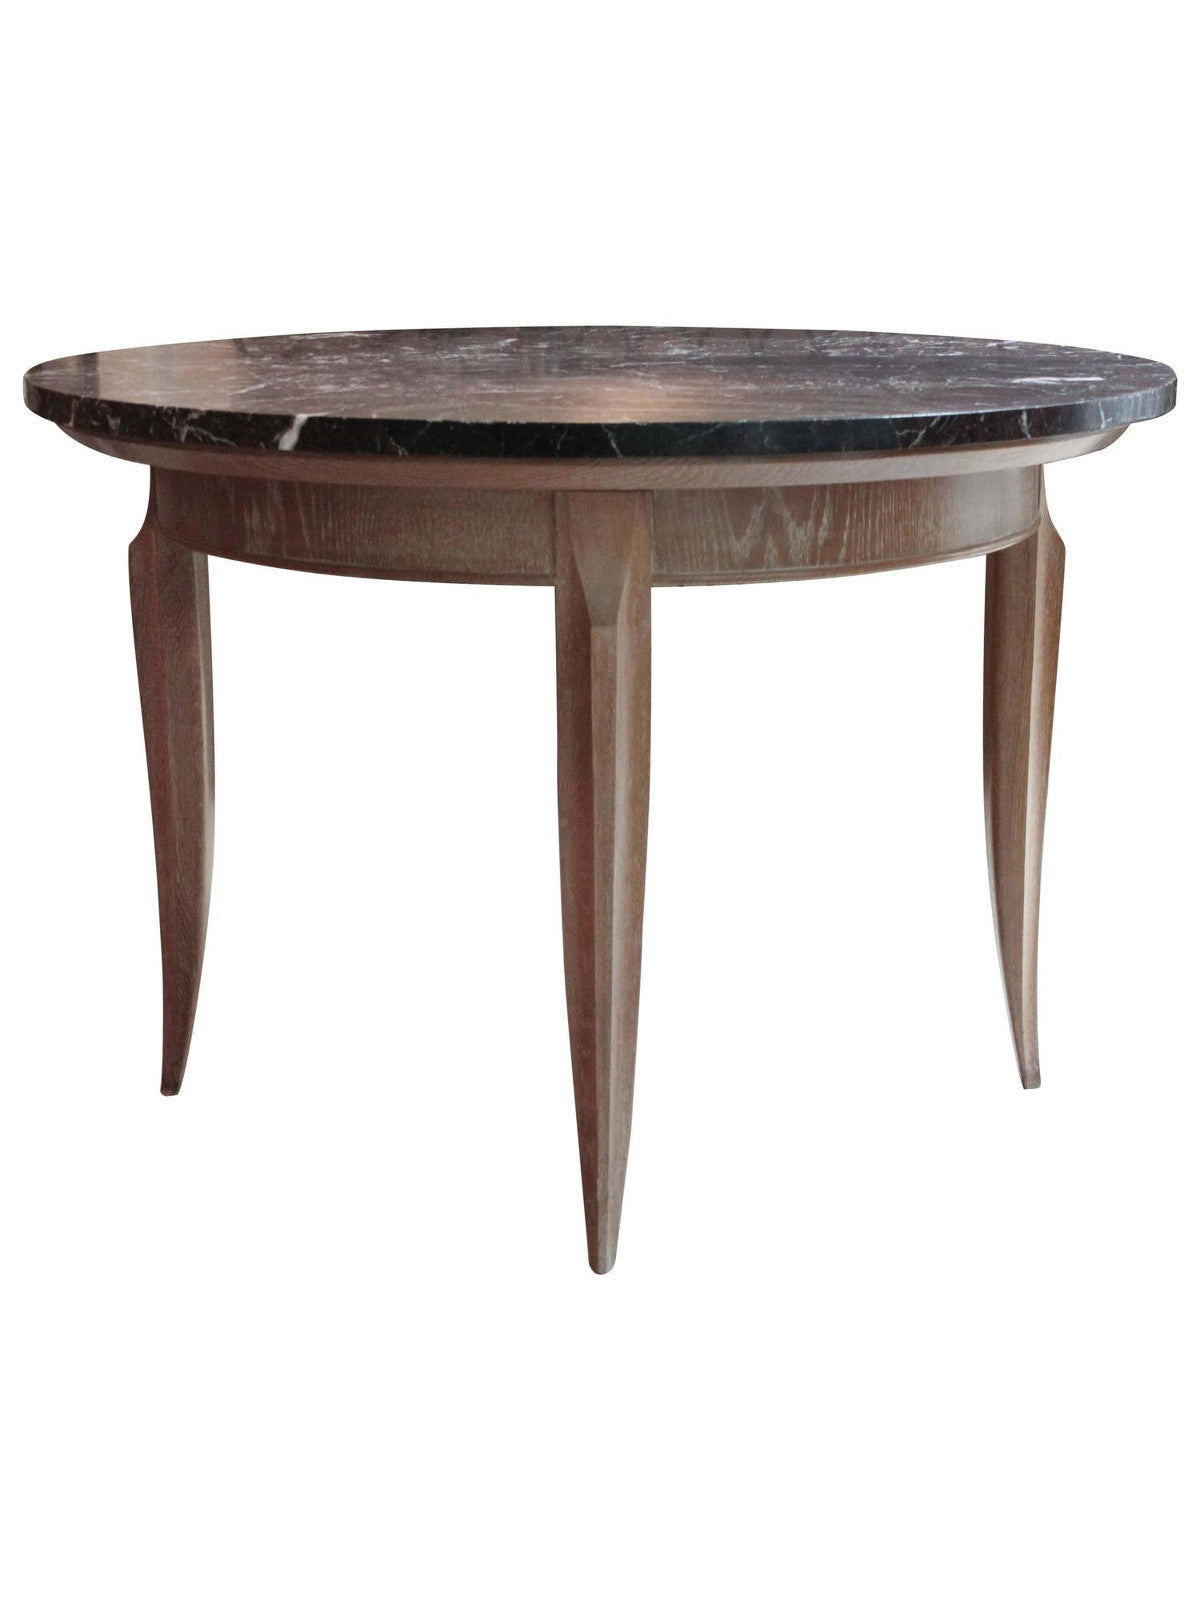 White Oak and Marble Centre Table